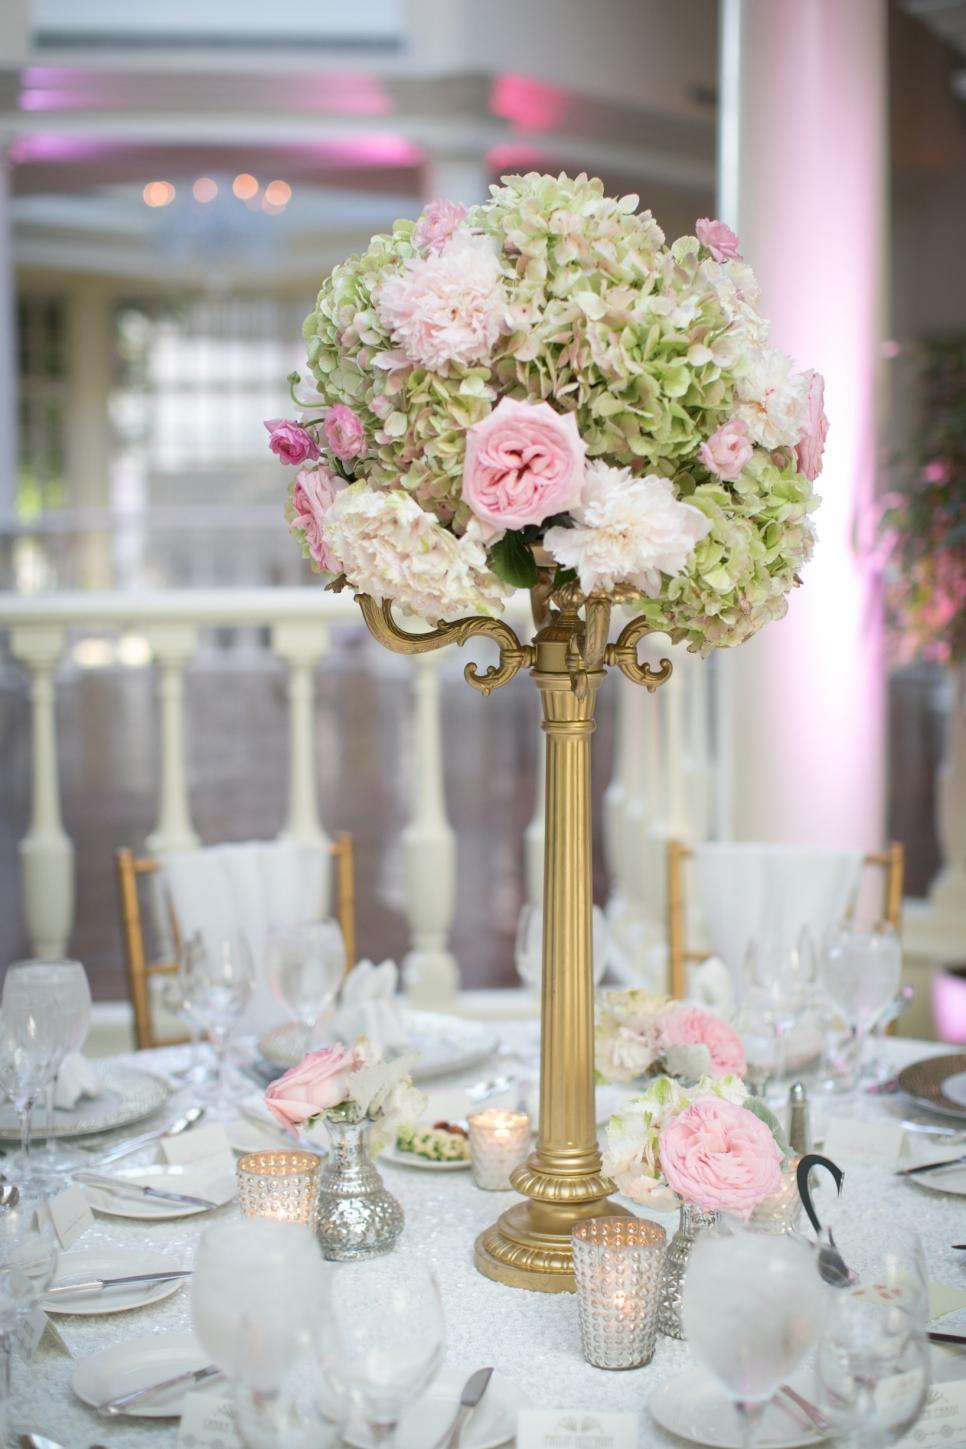 Striking wedding centerpiece ideas hgtv - Deco vintage pas cher ...